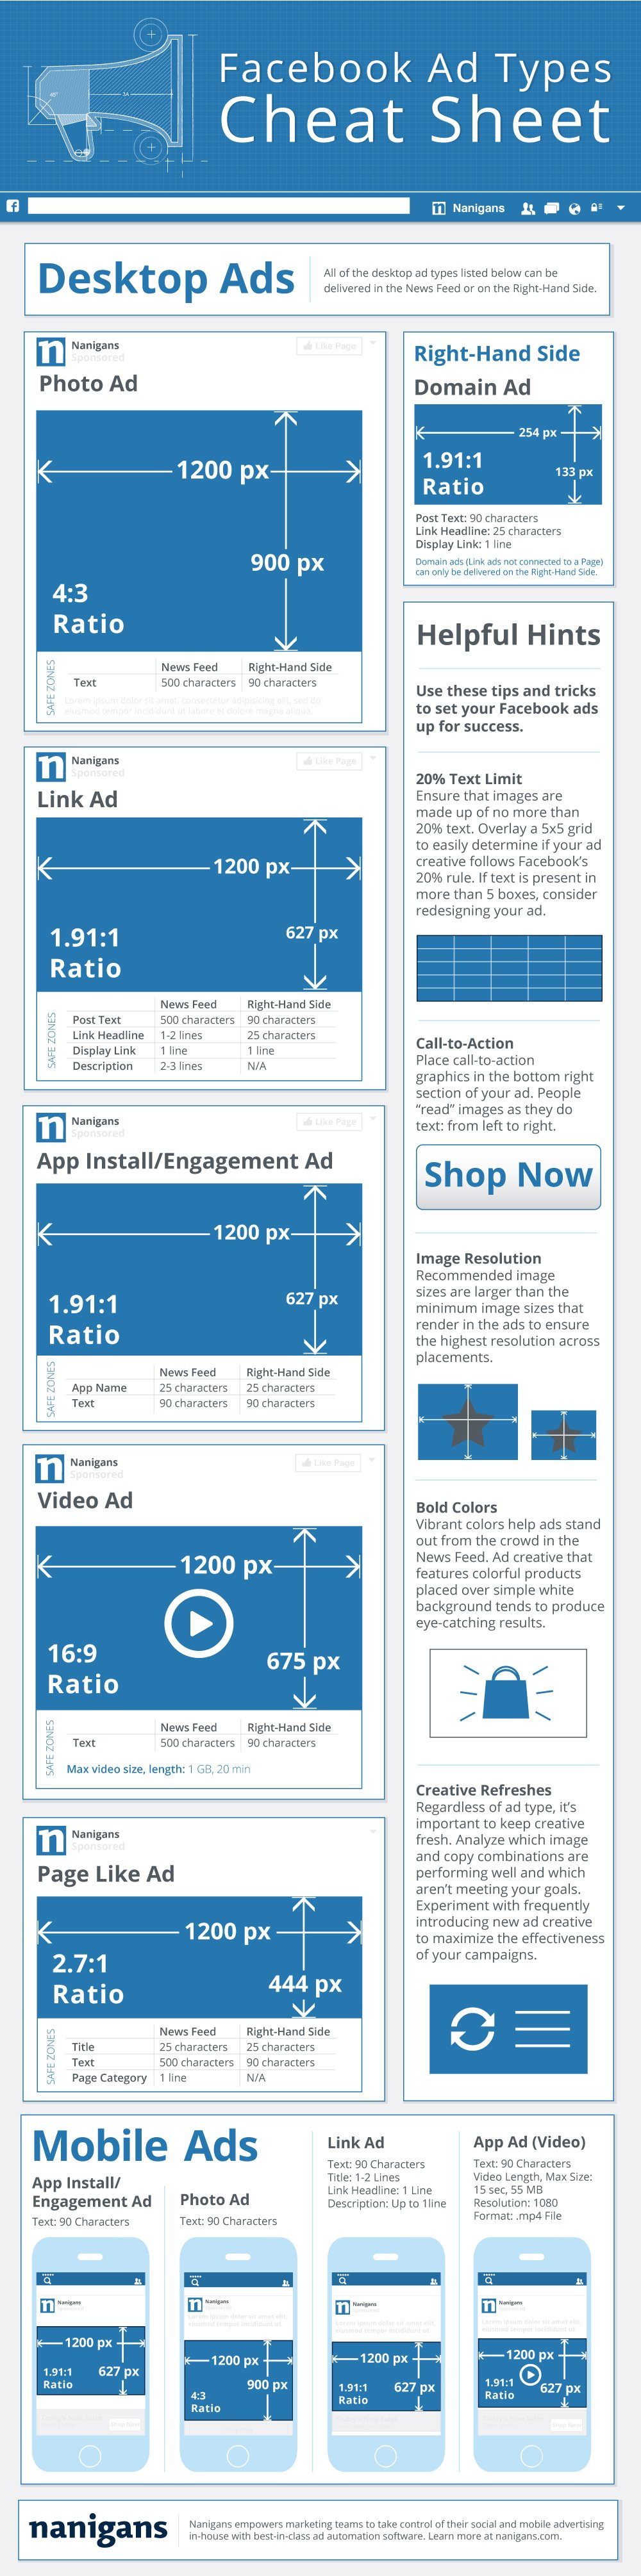 Nanigans Facebook Ad Types Infographic